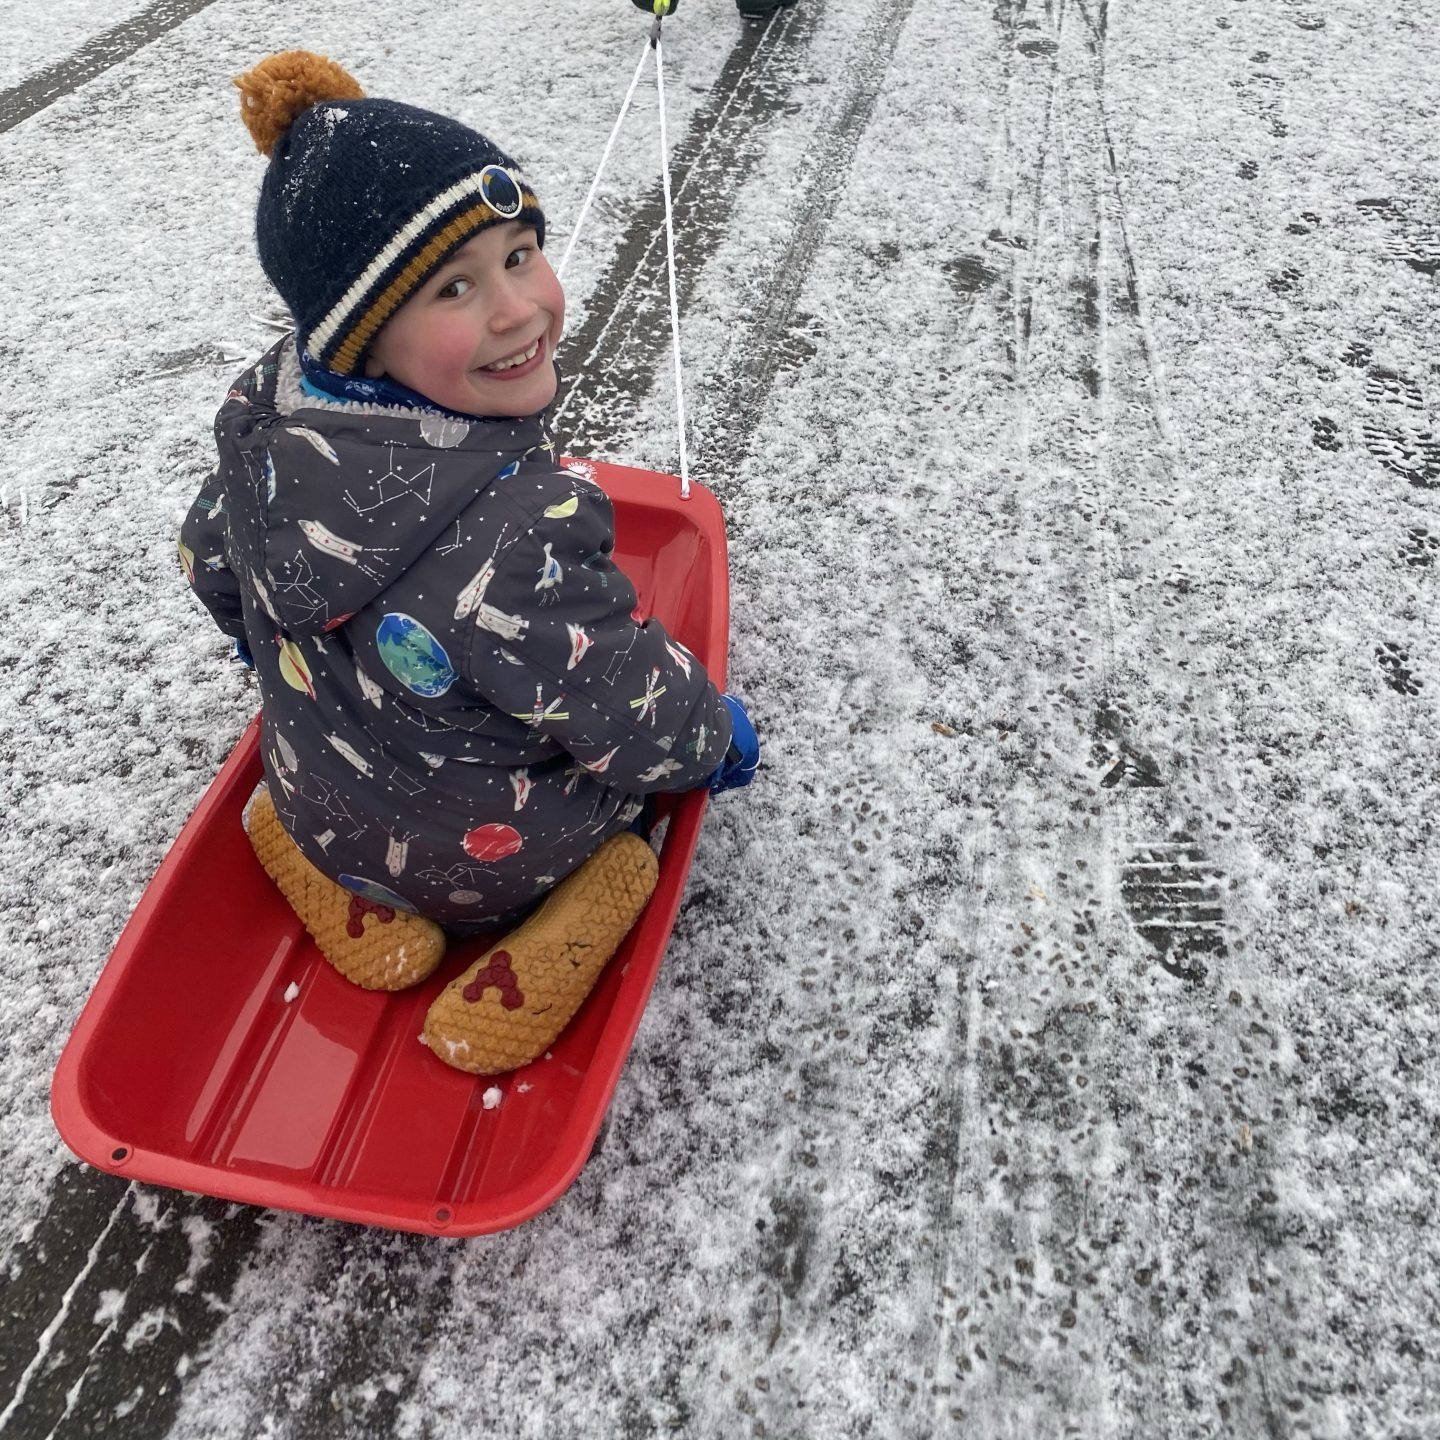 a young boy looking happy on a sledge